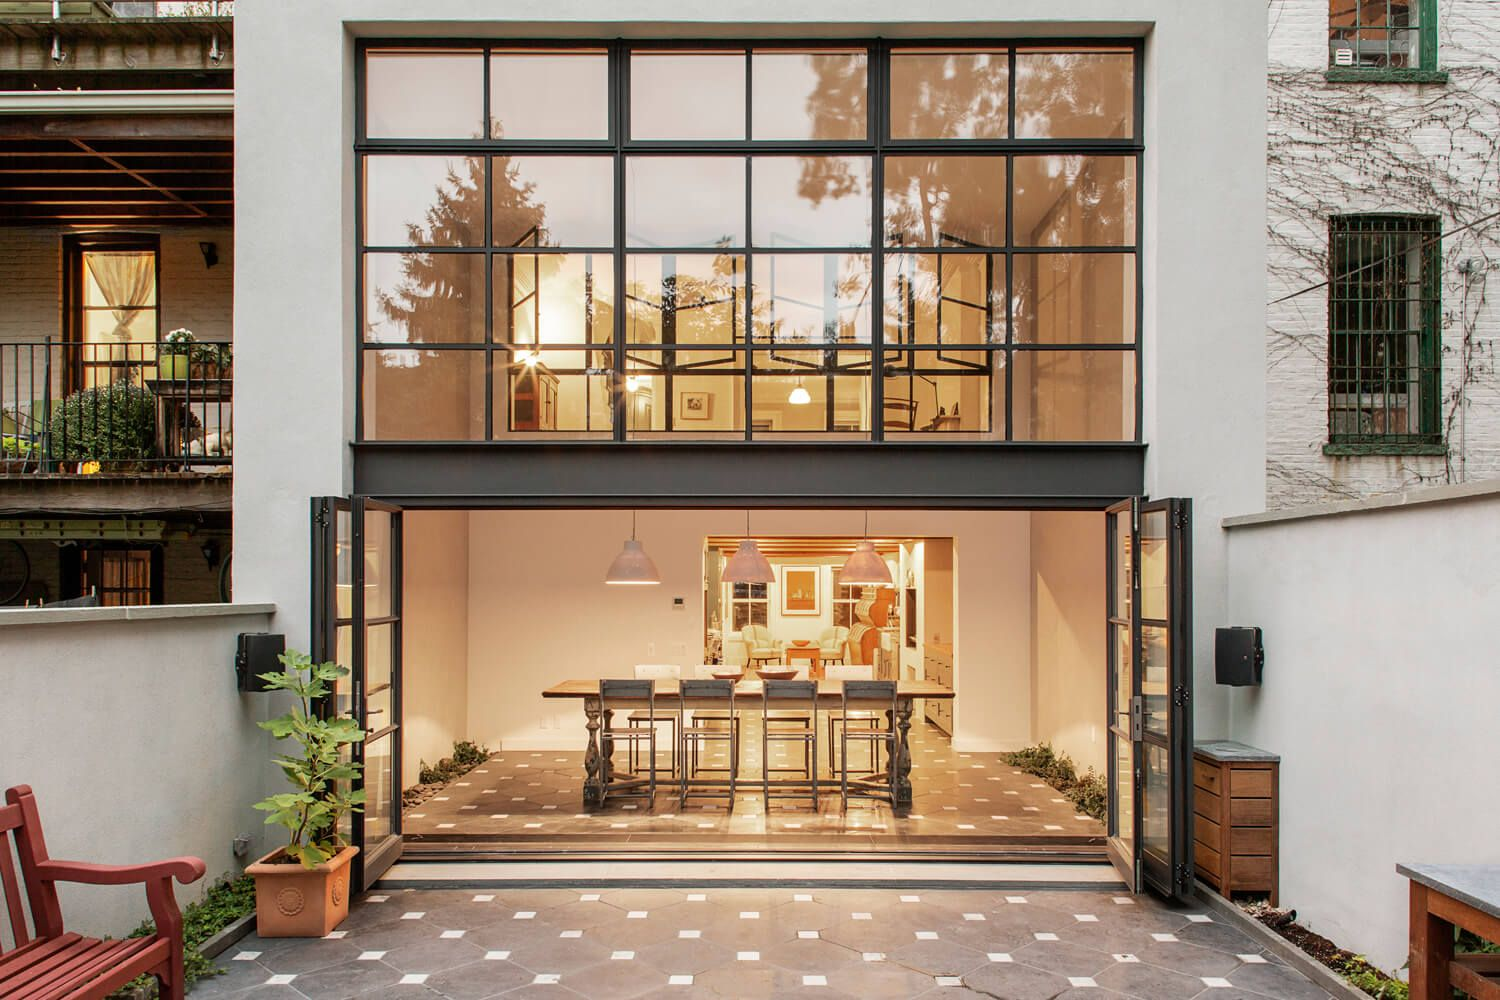 steel windows cost custom steel how much does twostory extension on townhouse cost brownstoner http pin by gina md dug out basements in 2018 pinterest